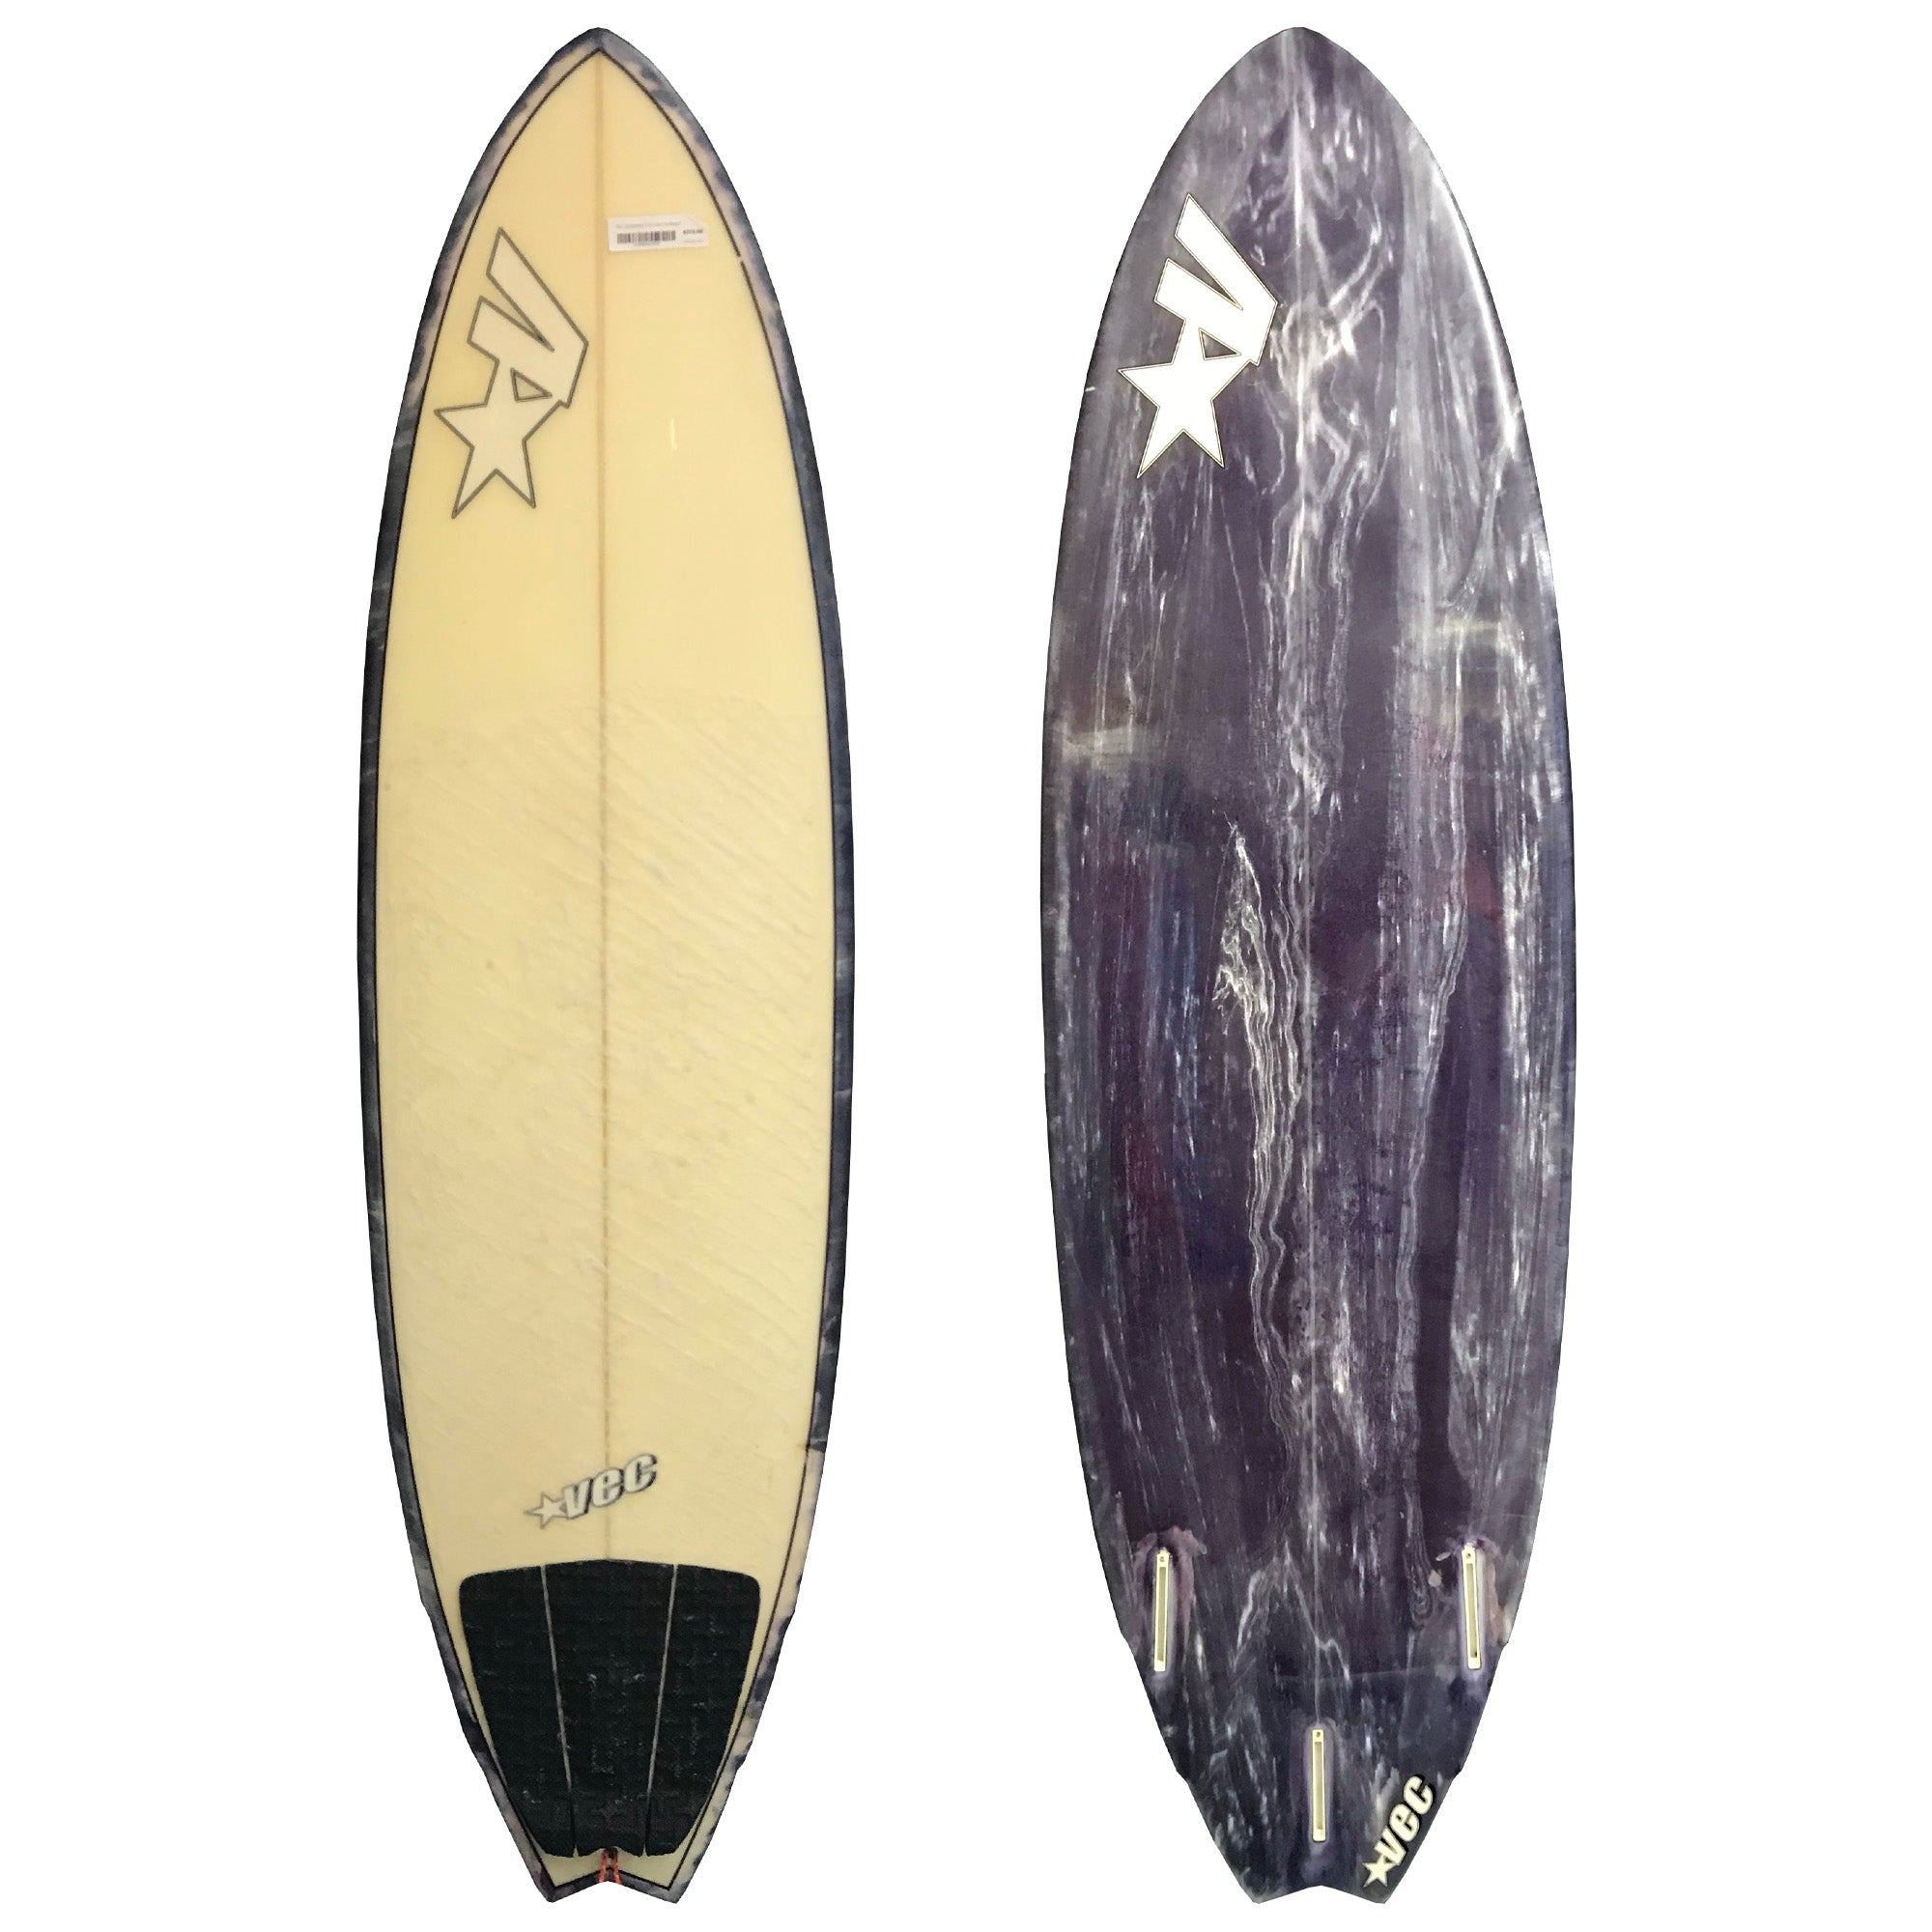 VEC Surfboards 5'10 Used Surfboard